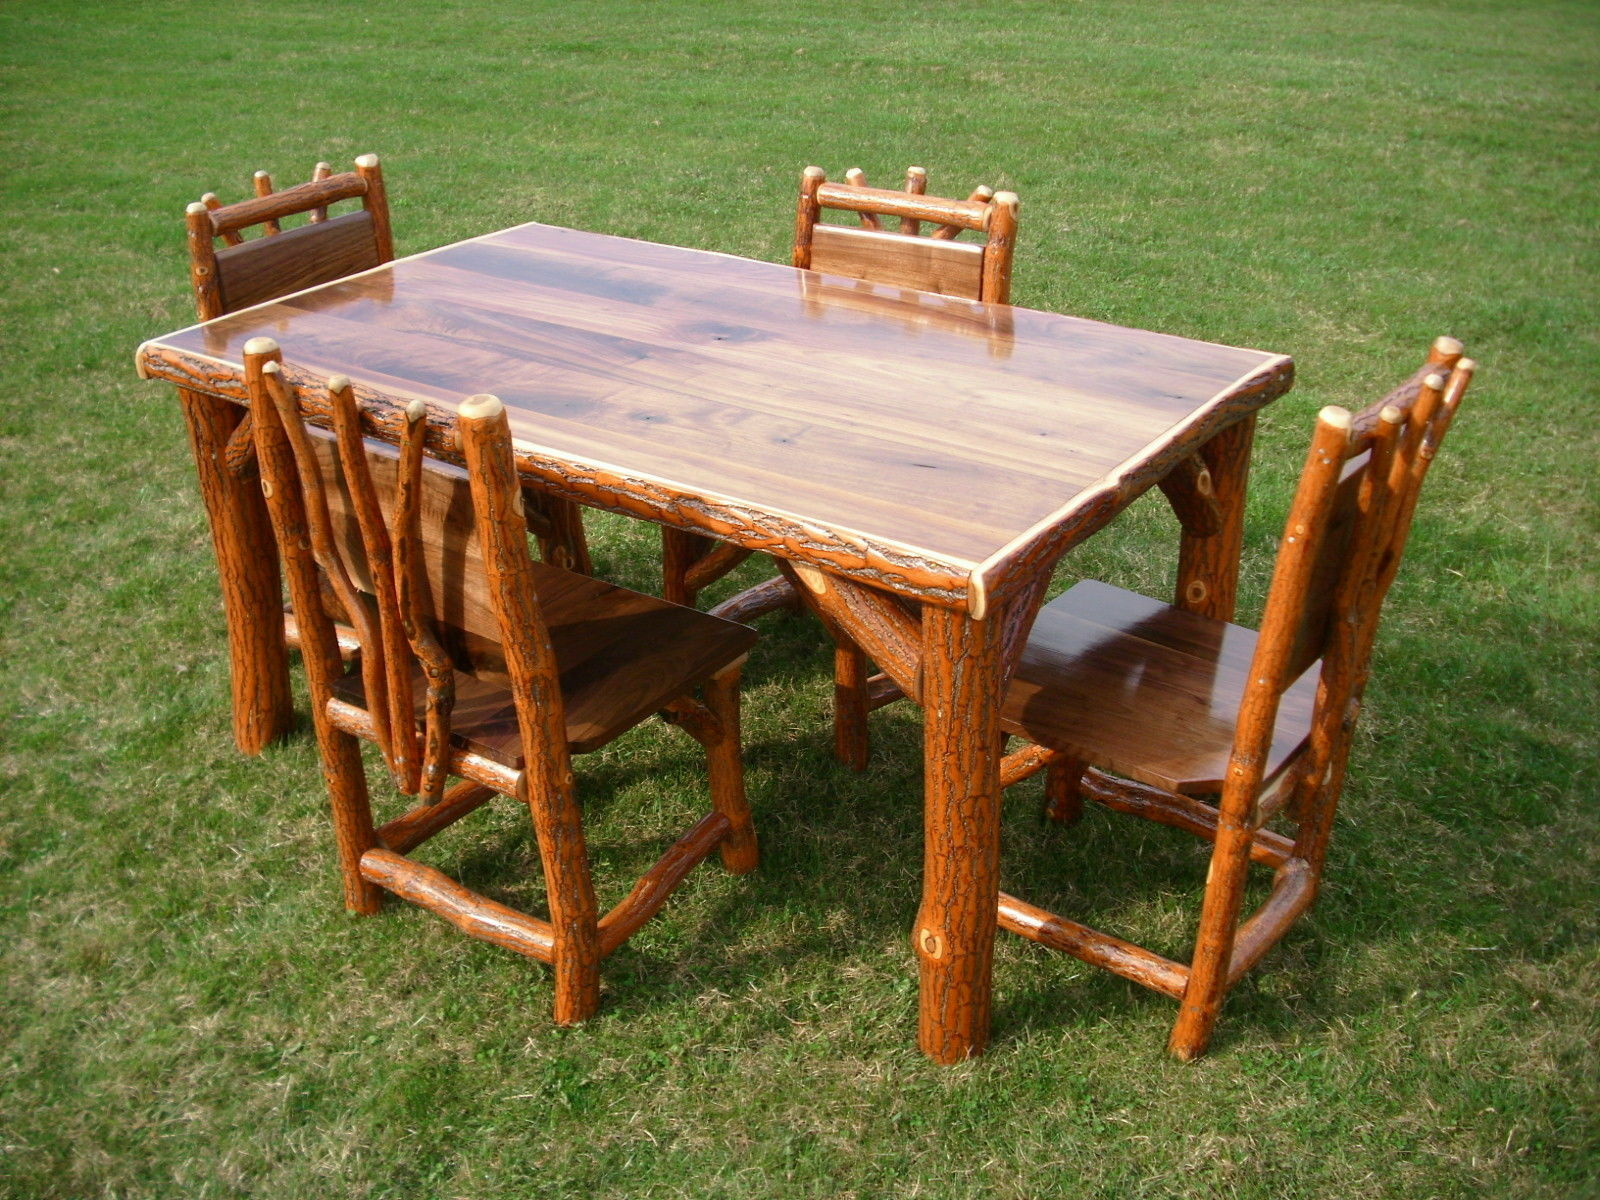 bn rustic kitchen tables How to Build a Rustic Kitchen Table